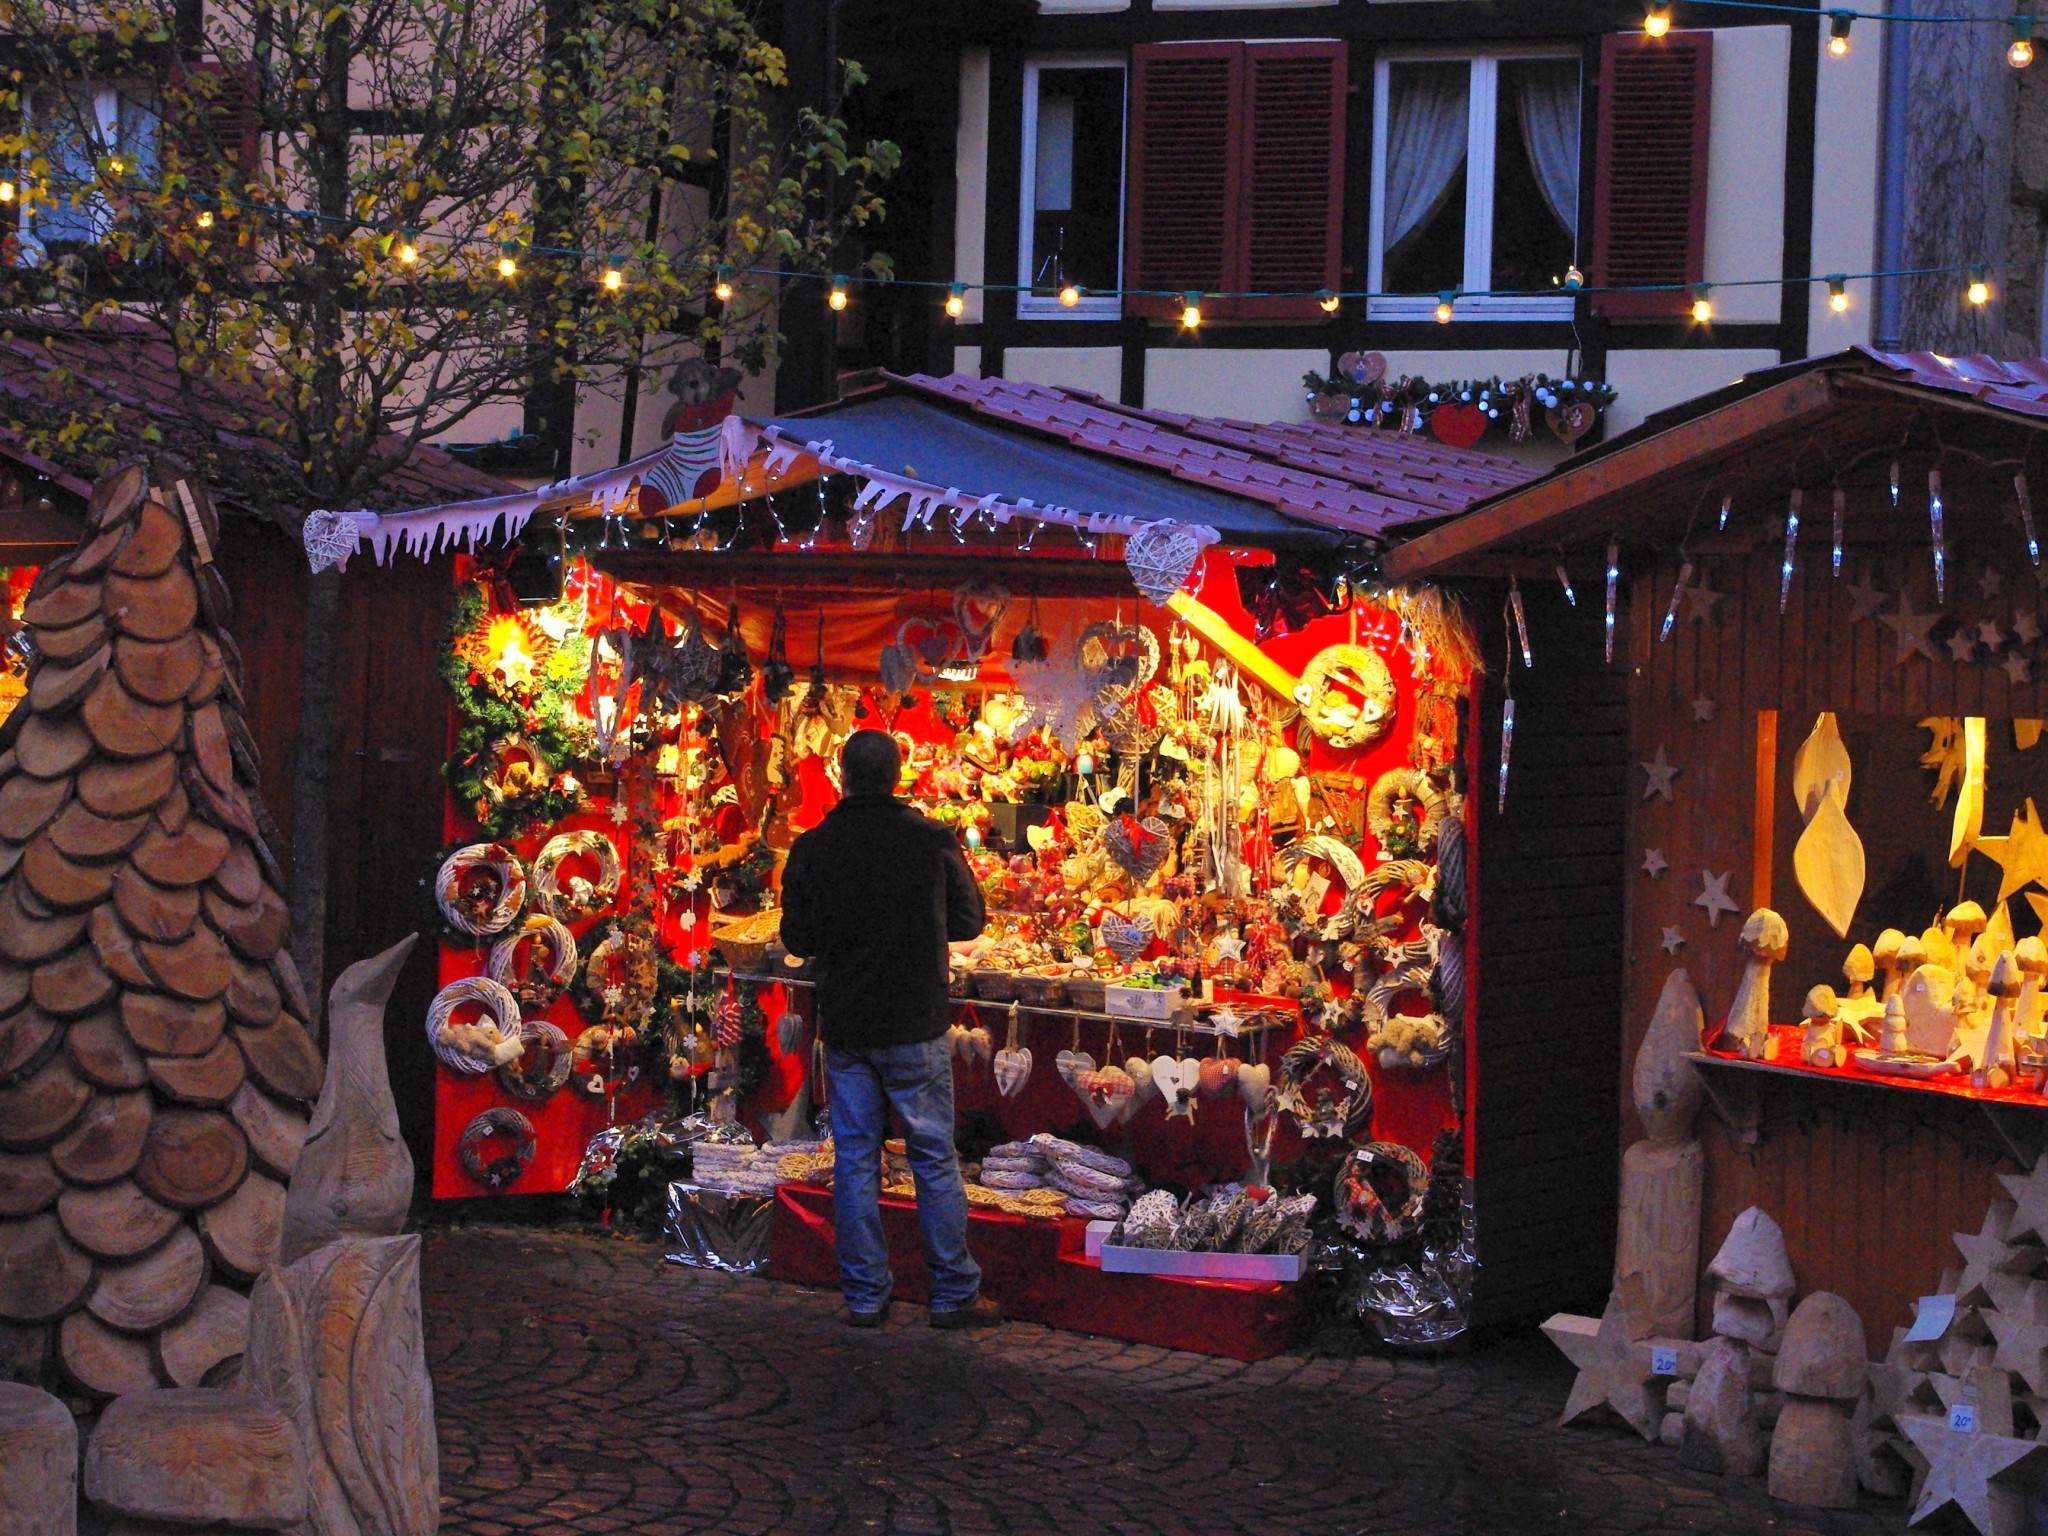 At the Christmas market of Eguisheim © French Moments